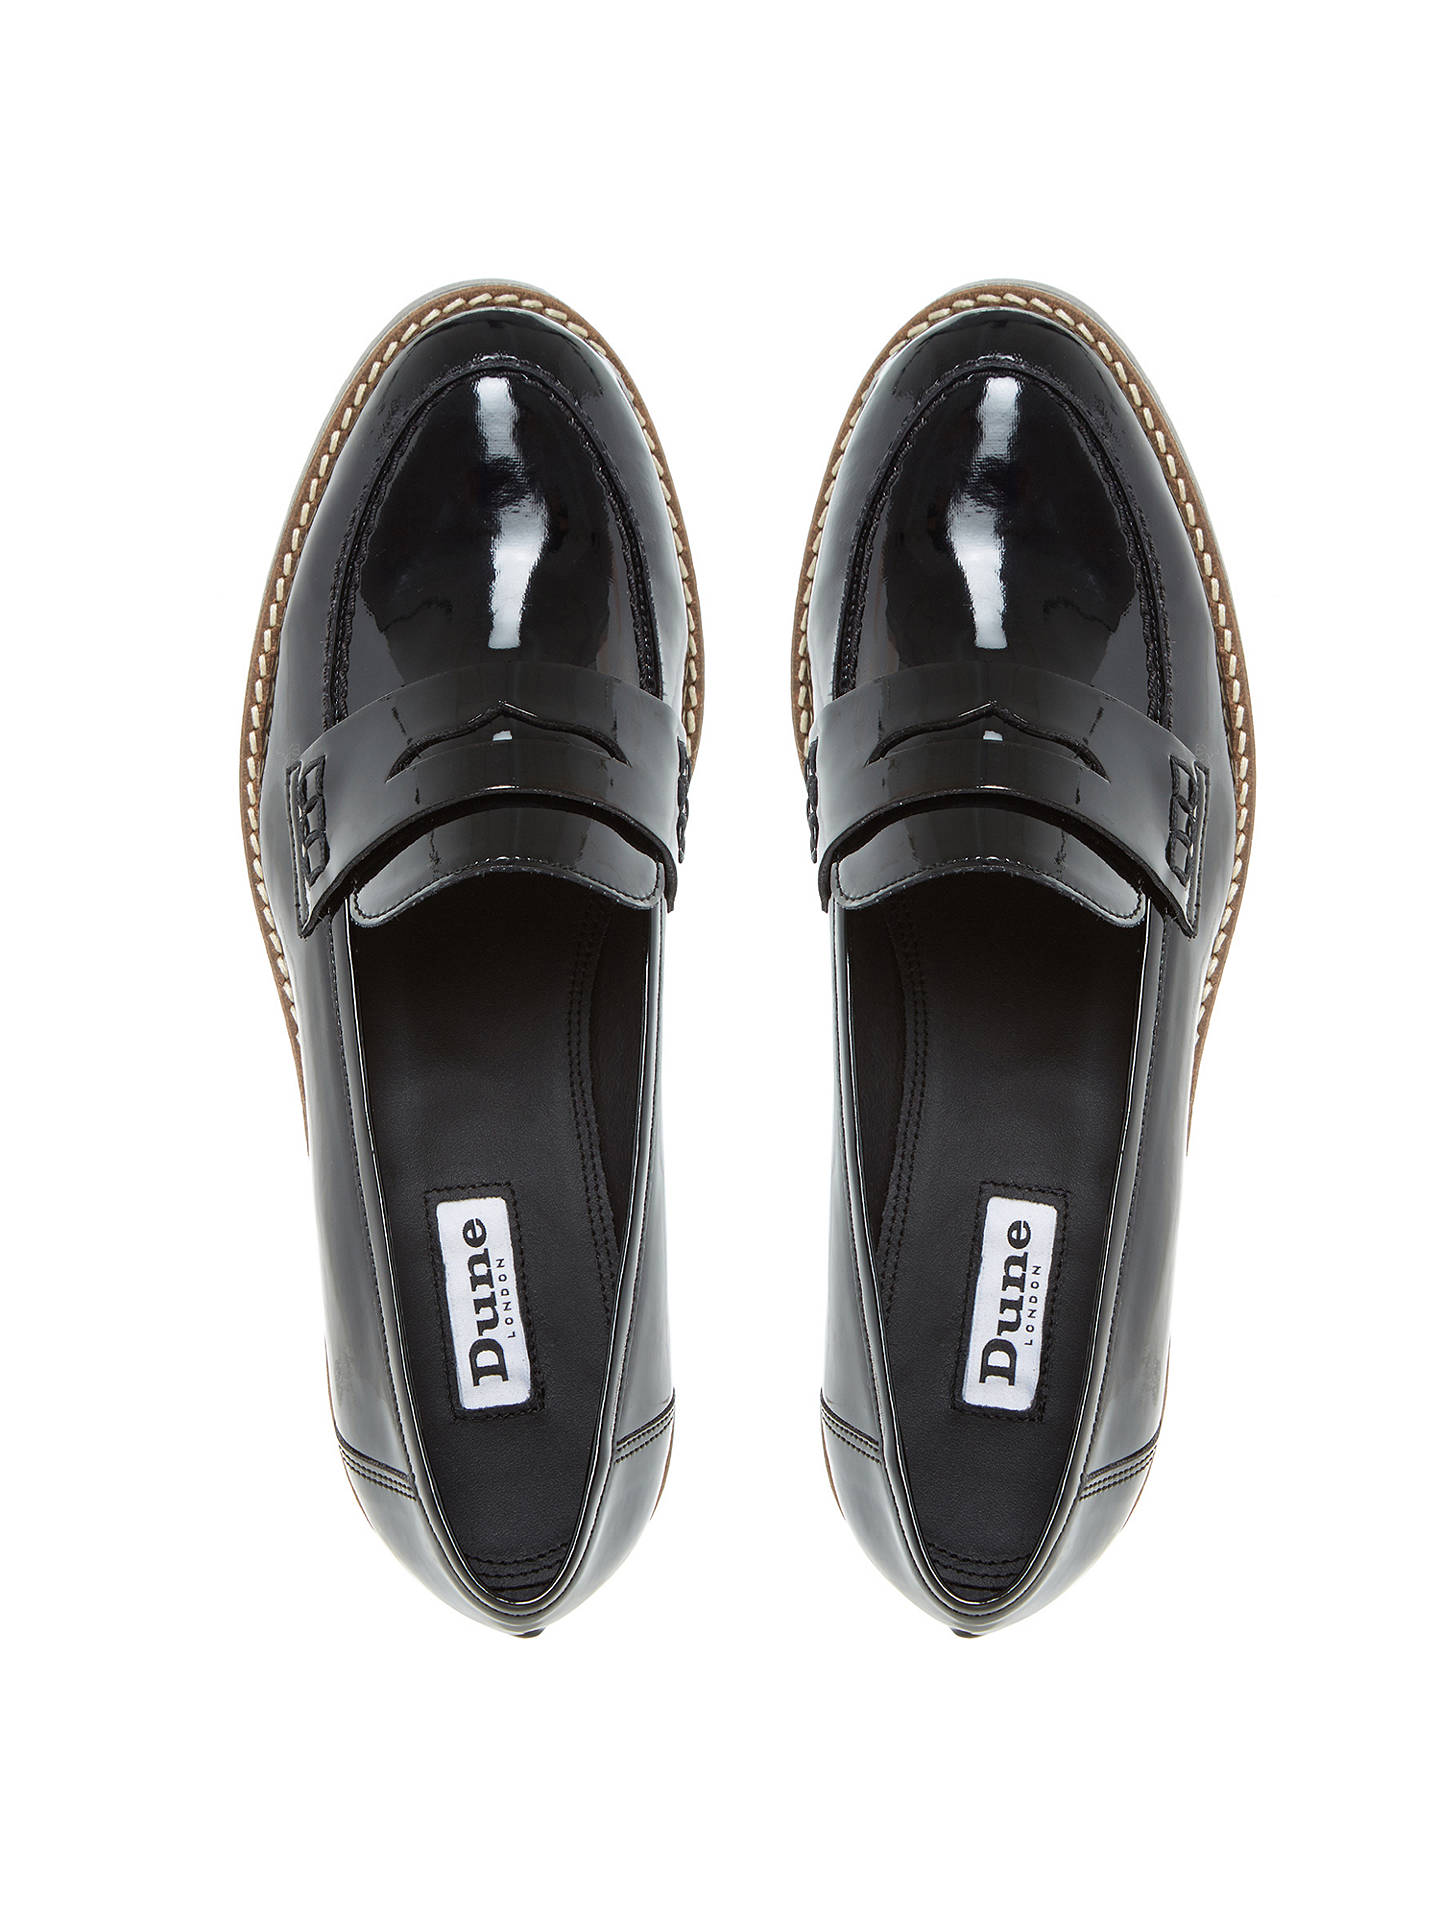 a6a62c69b24 ... Buy Dune Graphic Flatform Penny Loafers